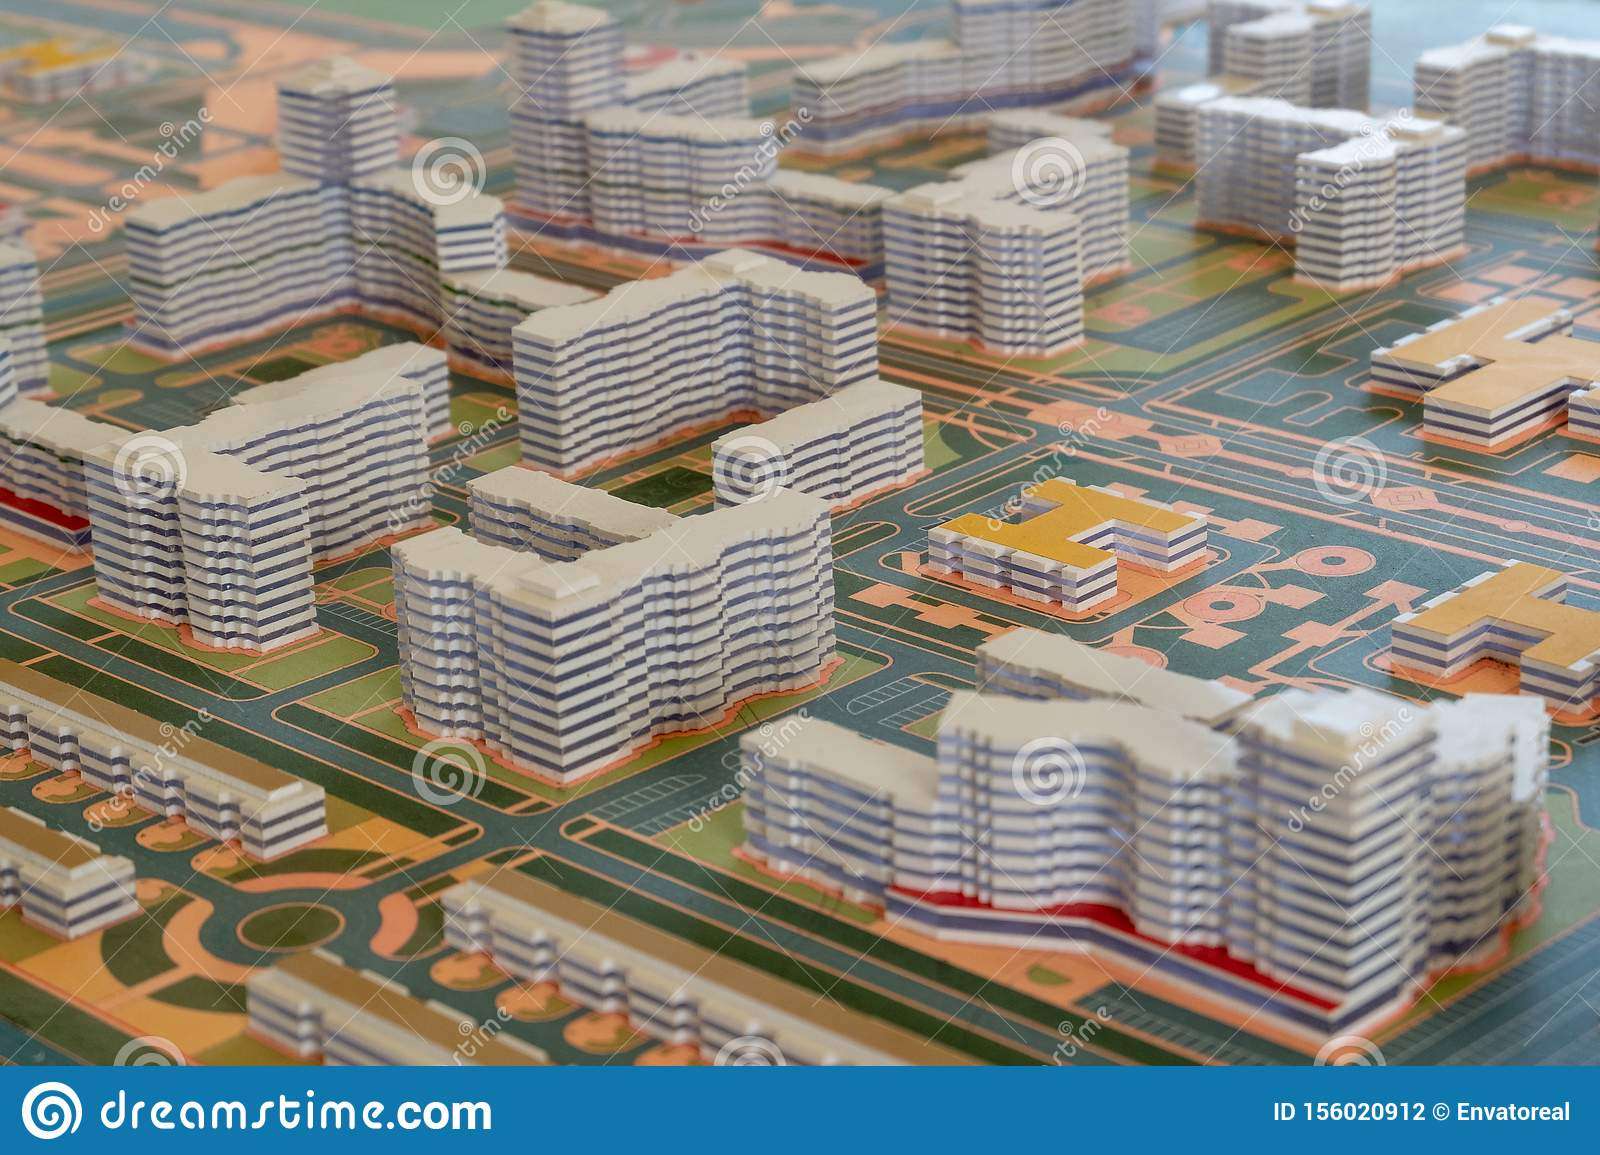 Layout Of High Rise Buildings And Streets In An Abstract City Modern Urban Background To Illustrate Mortgage Lending And Home Stock Photo Image Of Estate Architectural 156020912